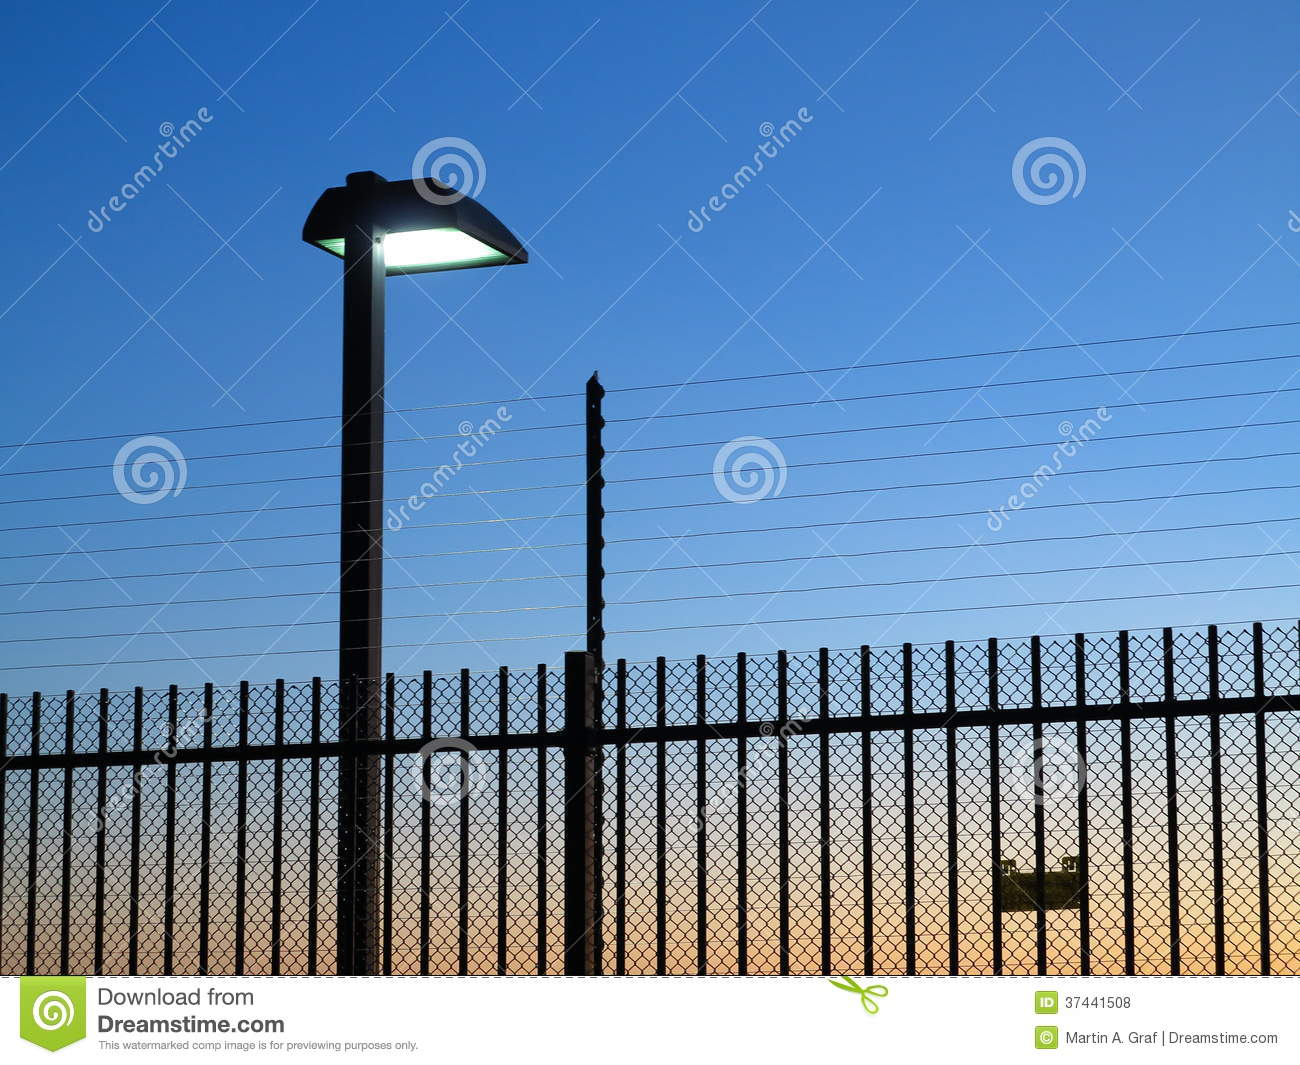 Safety fence with spotlight on by dusk royalty free stock